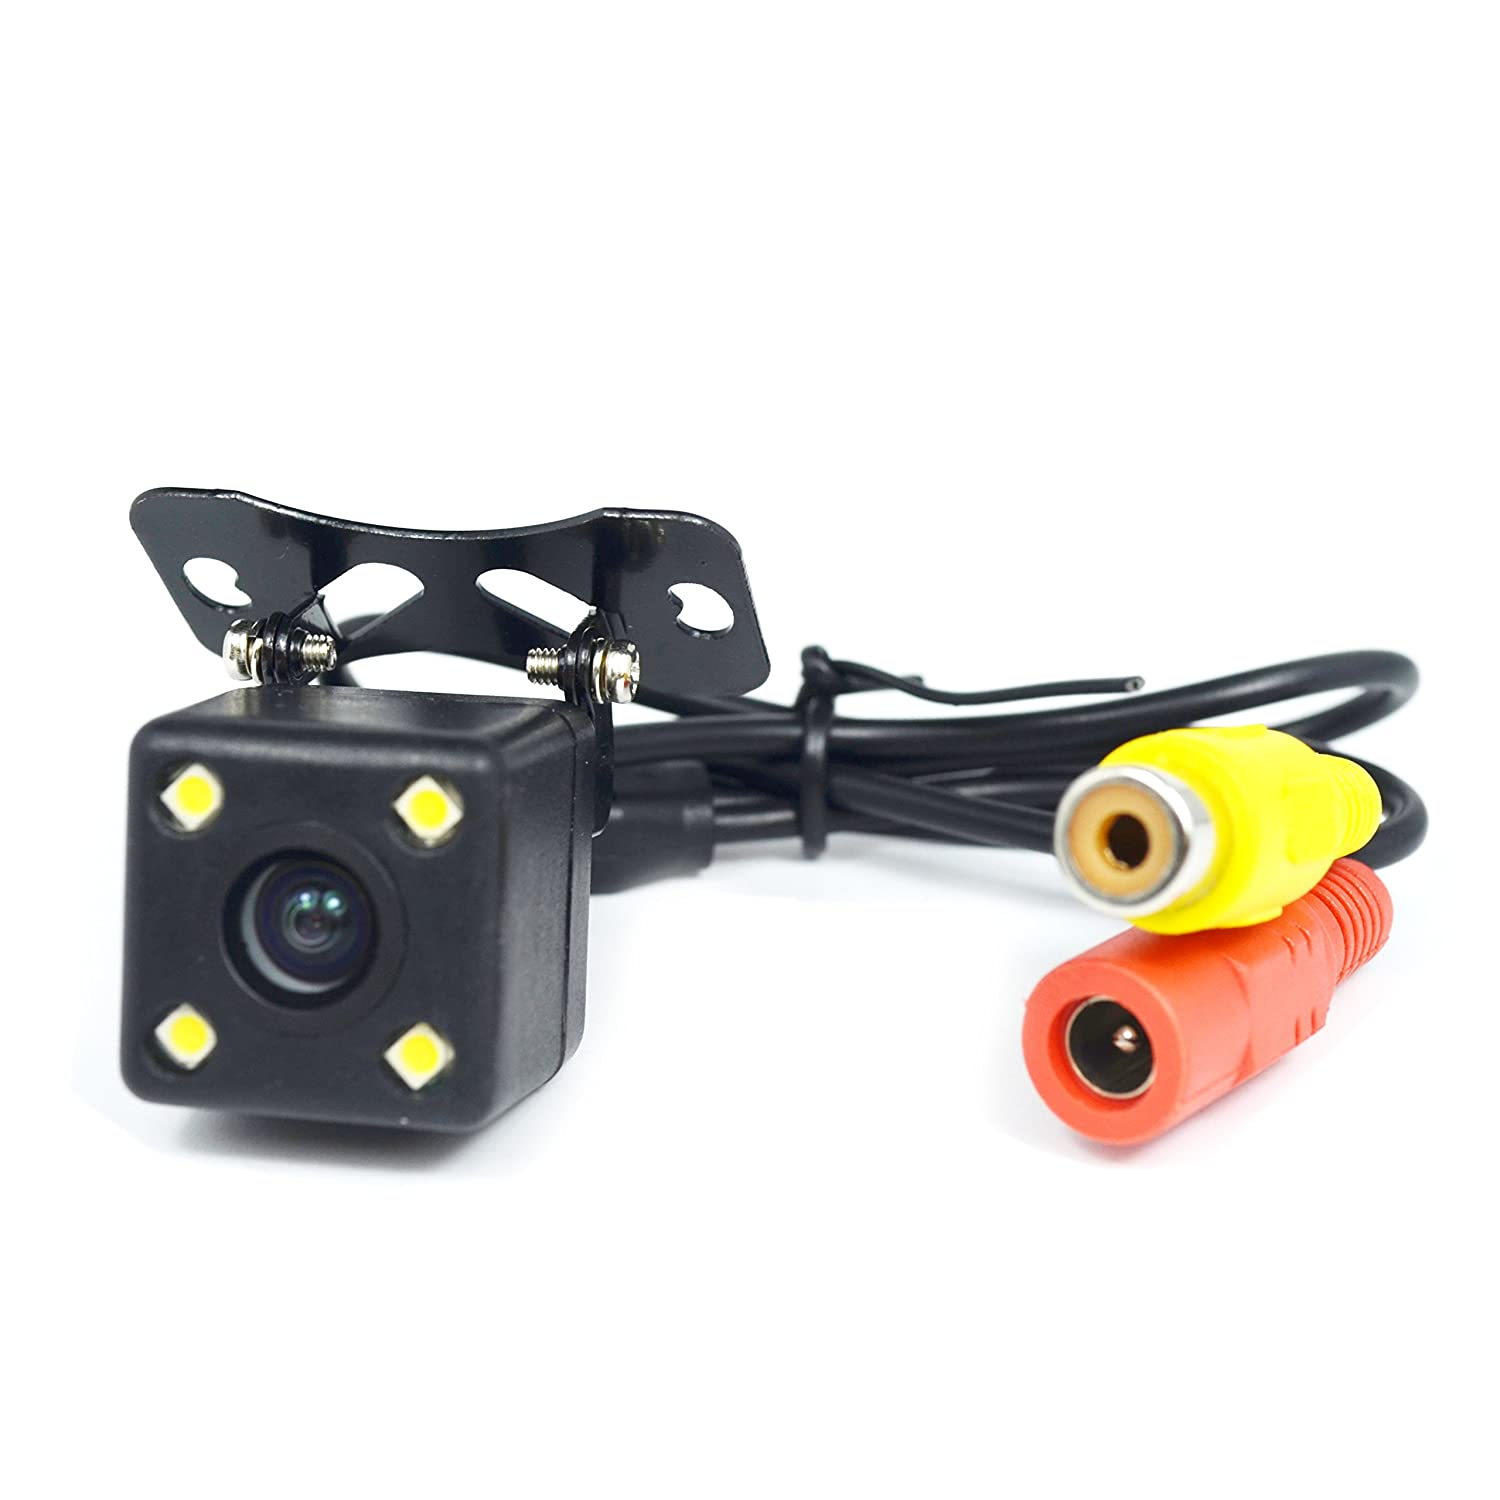 18LED KASIONVI Rear View Backup Camera for Car Truck Lorry Pickup Bus Vehicle Caravans- Waterproof 35V Wide Voltage Night Vision DC 9V